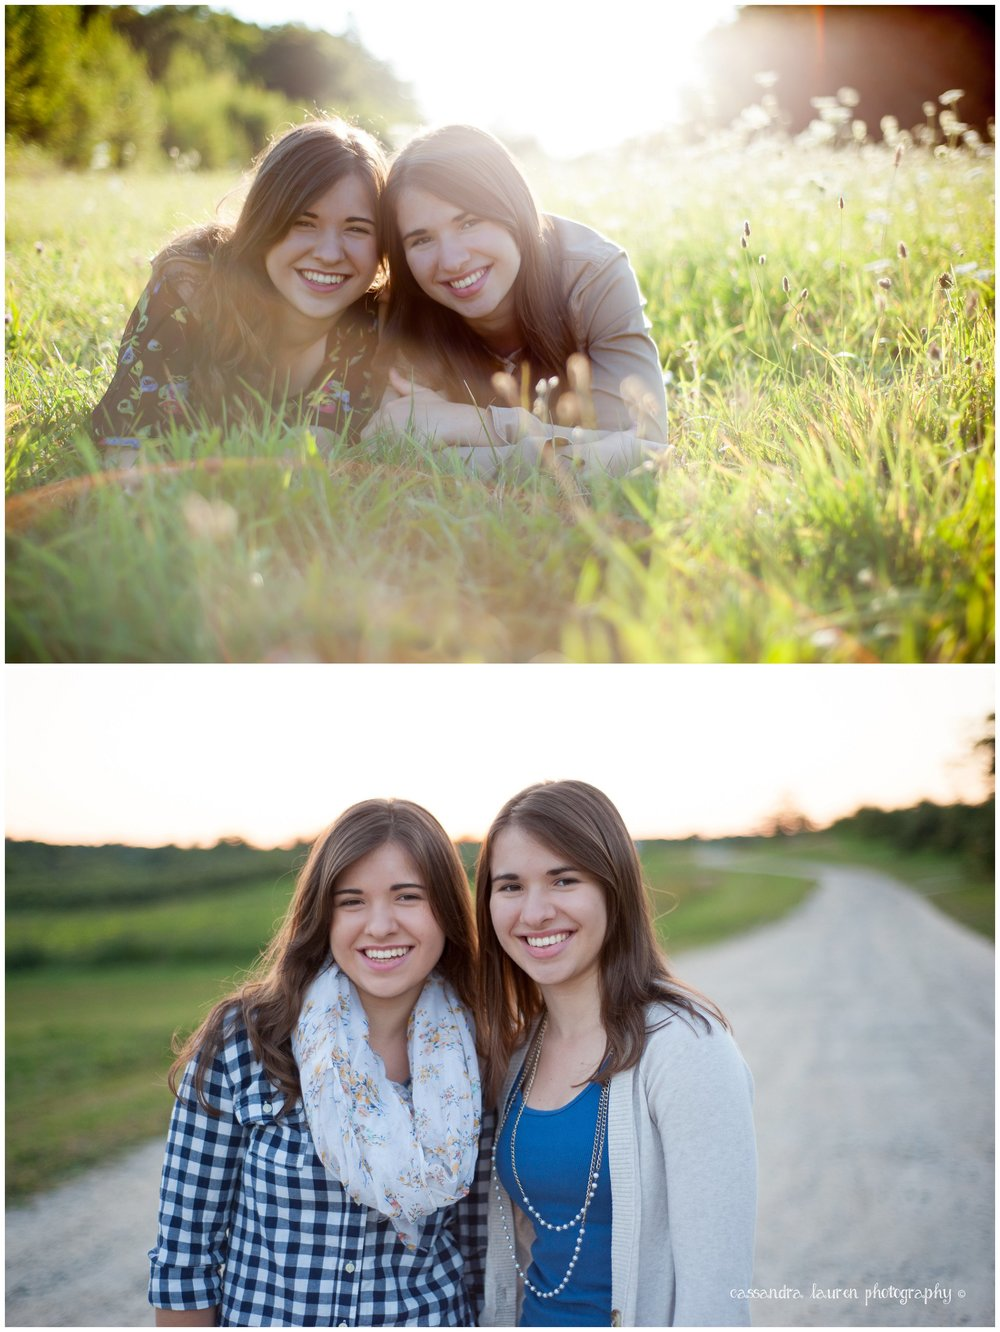 High School Senior Twin Girls Portrait Photography Northshore MA